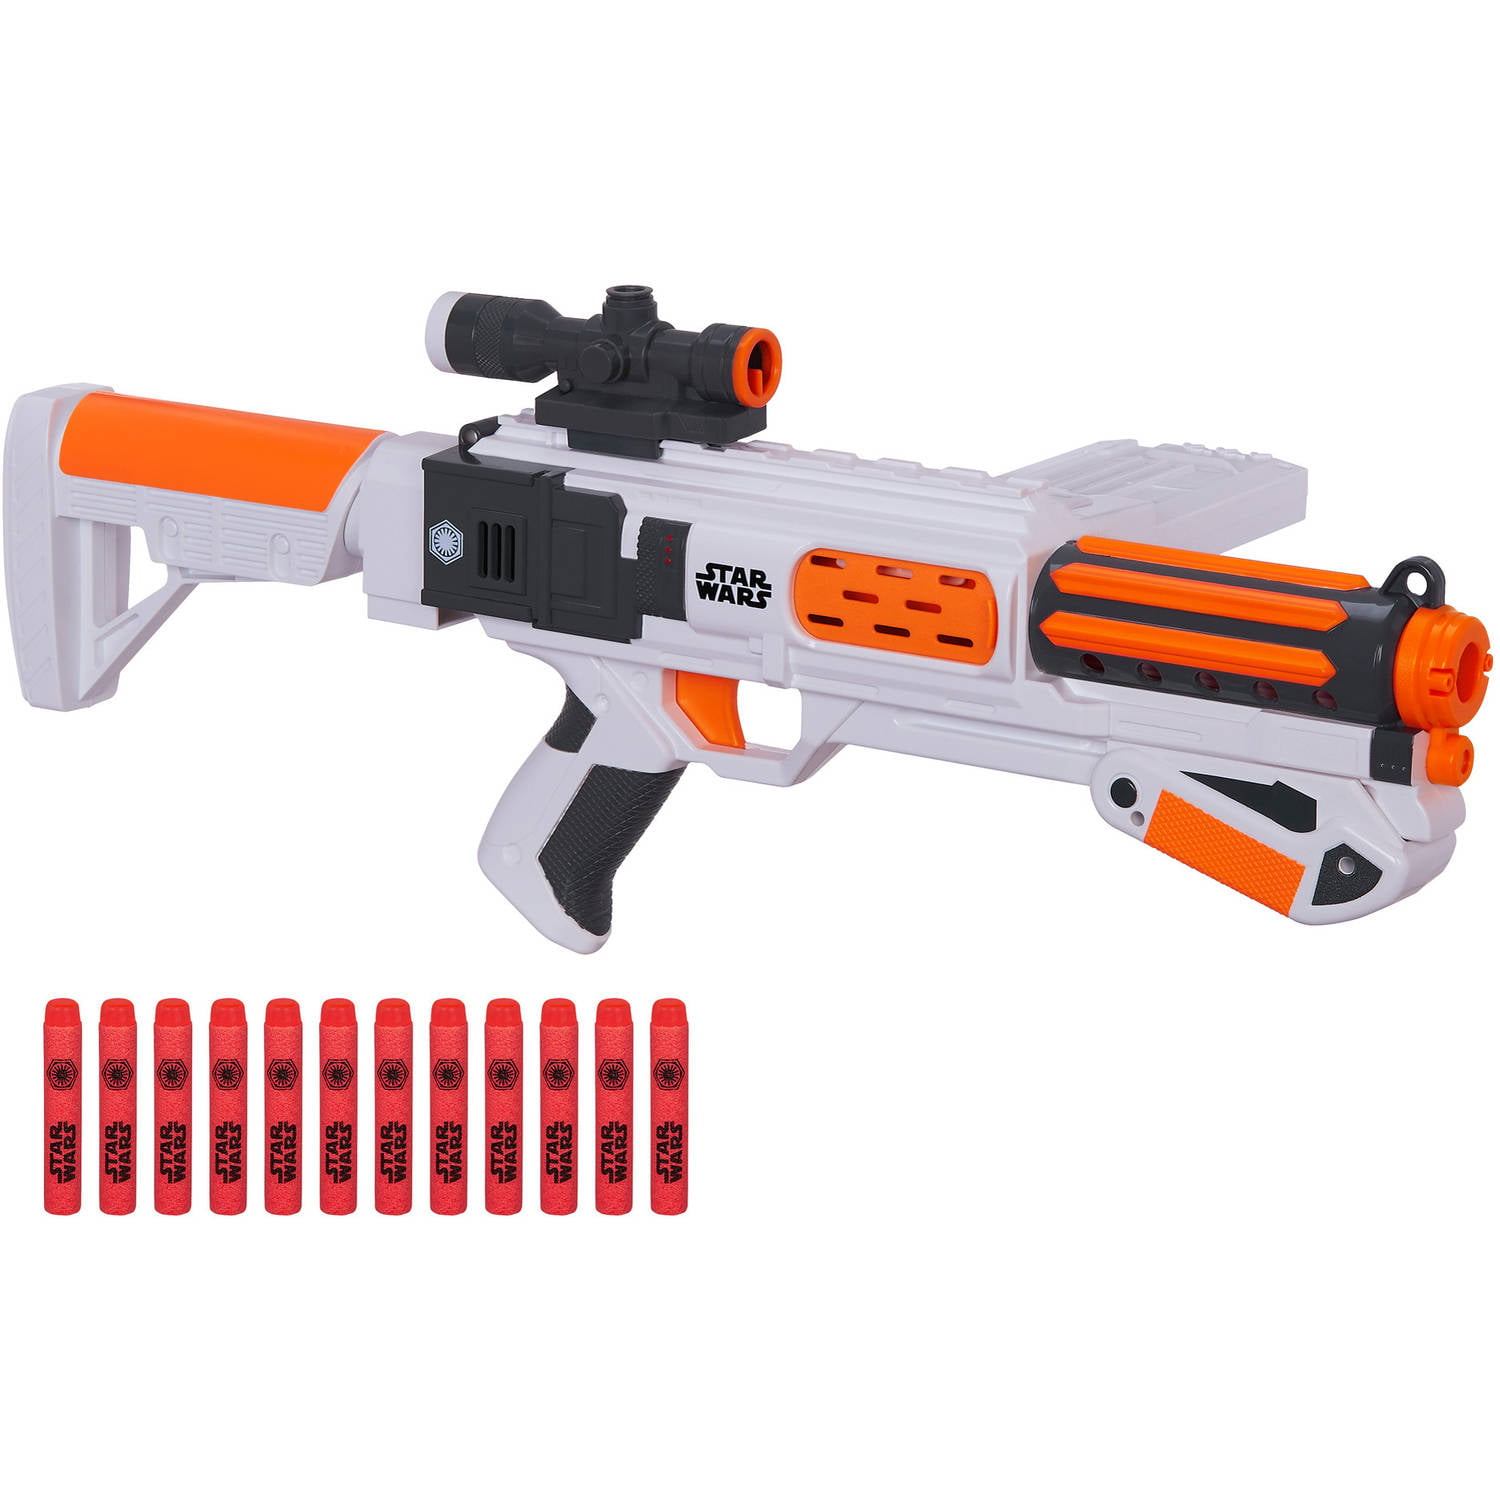 Star Wars Nerf Episode Vii First Order Stormtrooper Deluxe